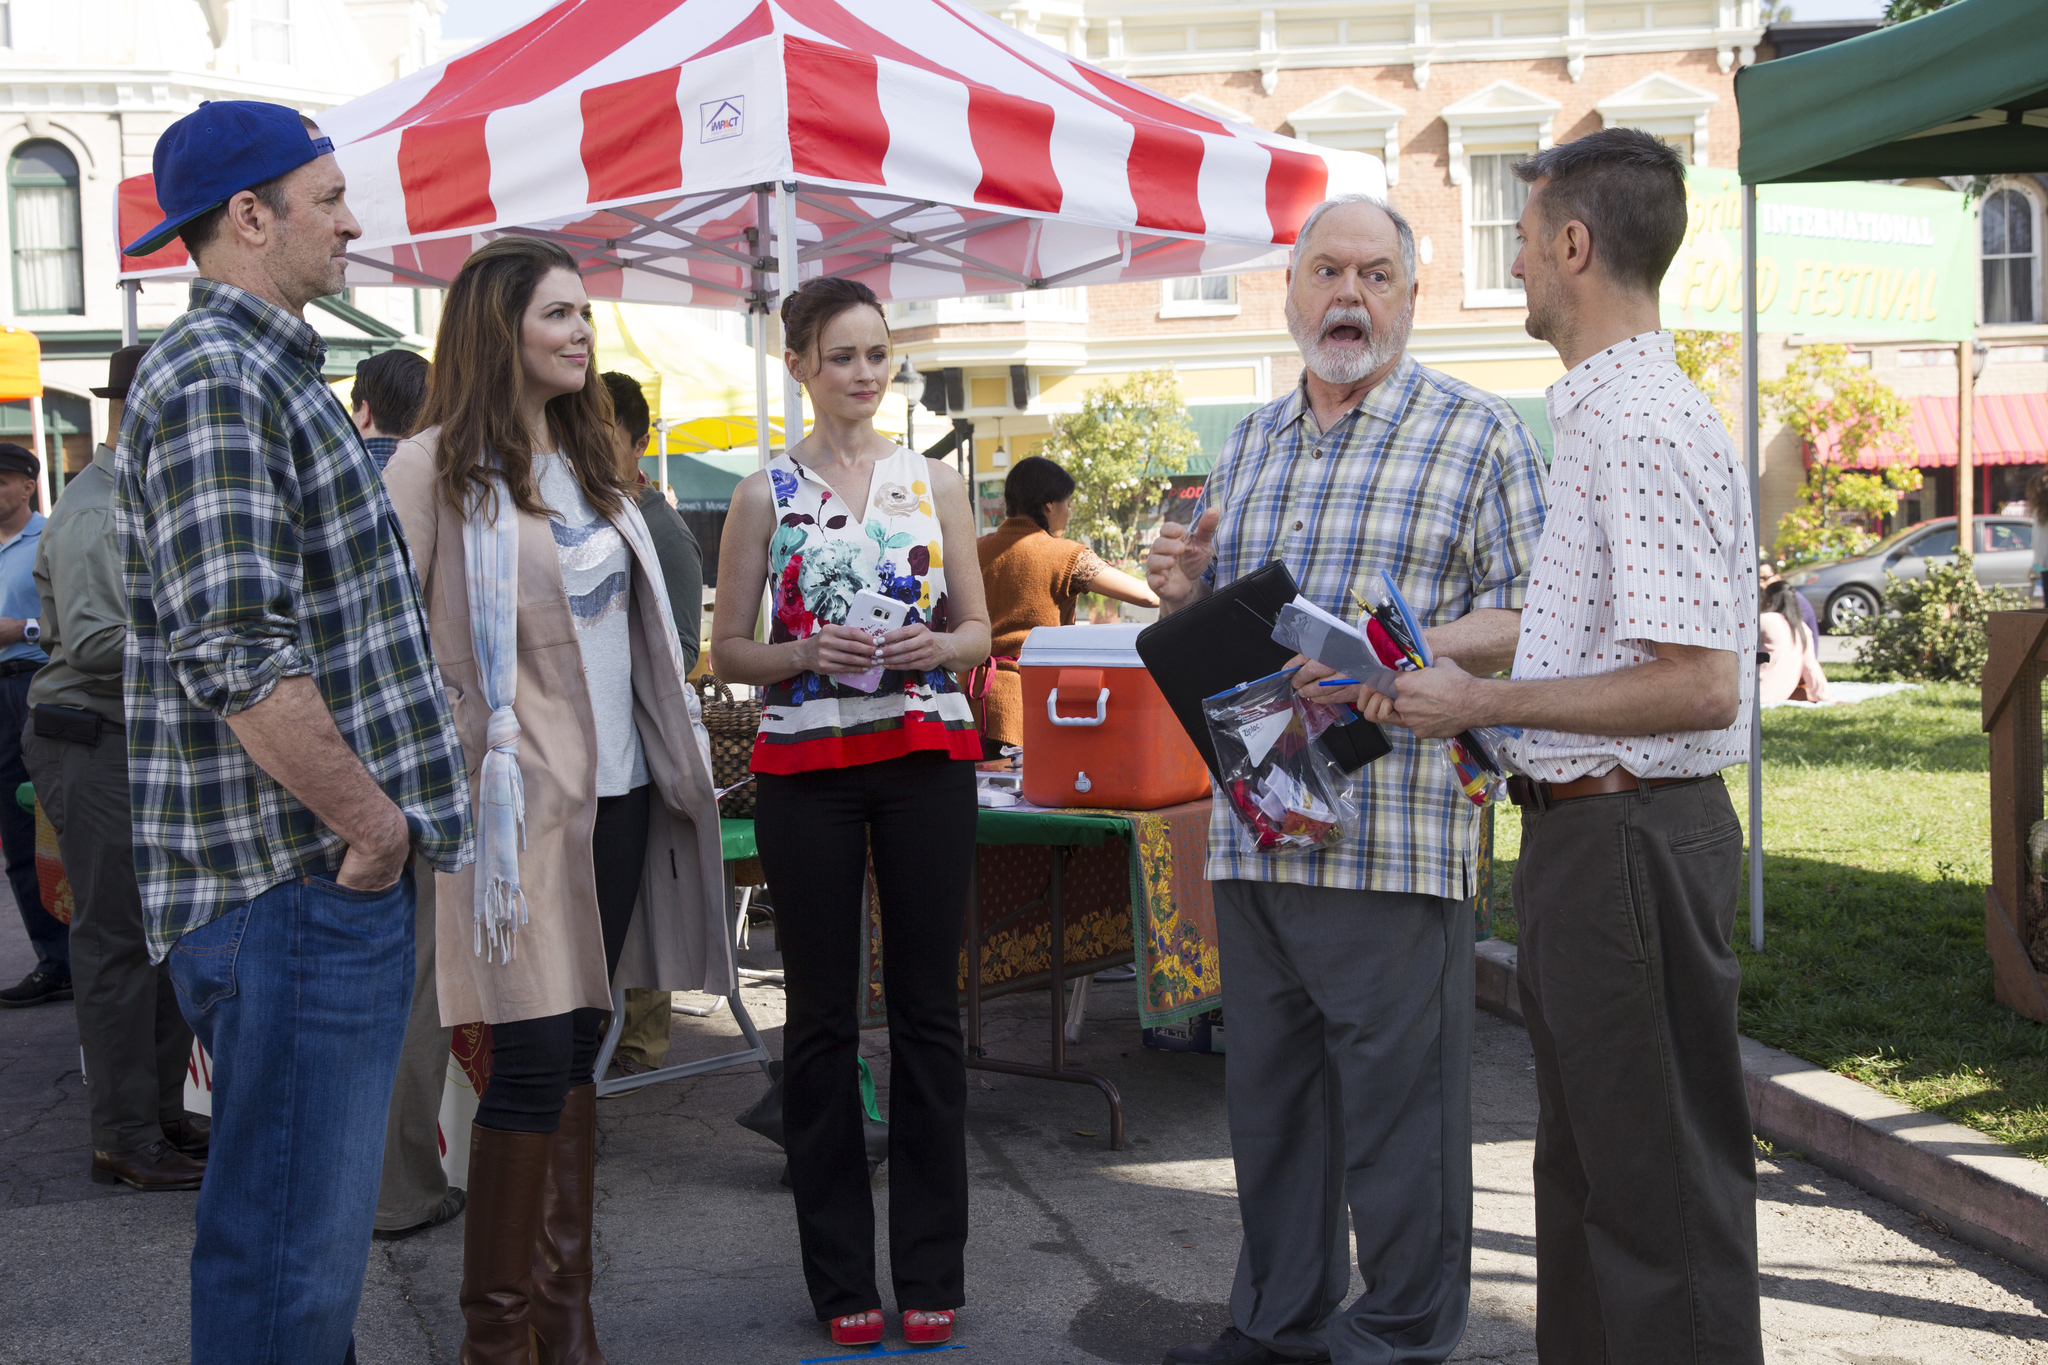 Alexis Bledel, Lauren Graham, Sean Gunn, Scott Patterson, and Michael Winters in Gilmore Girls: A Year in the Life (2016)